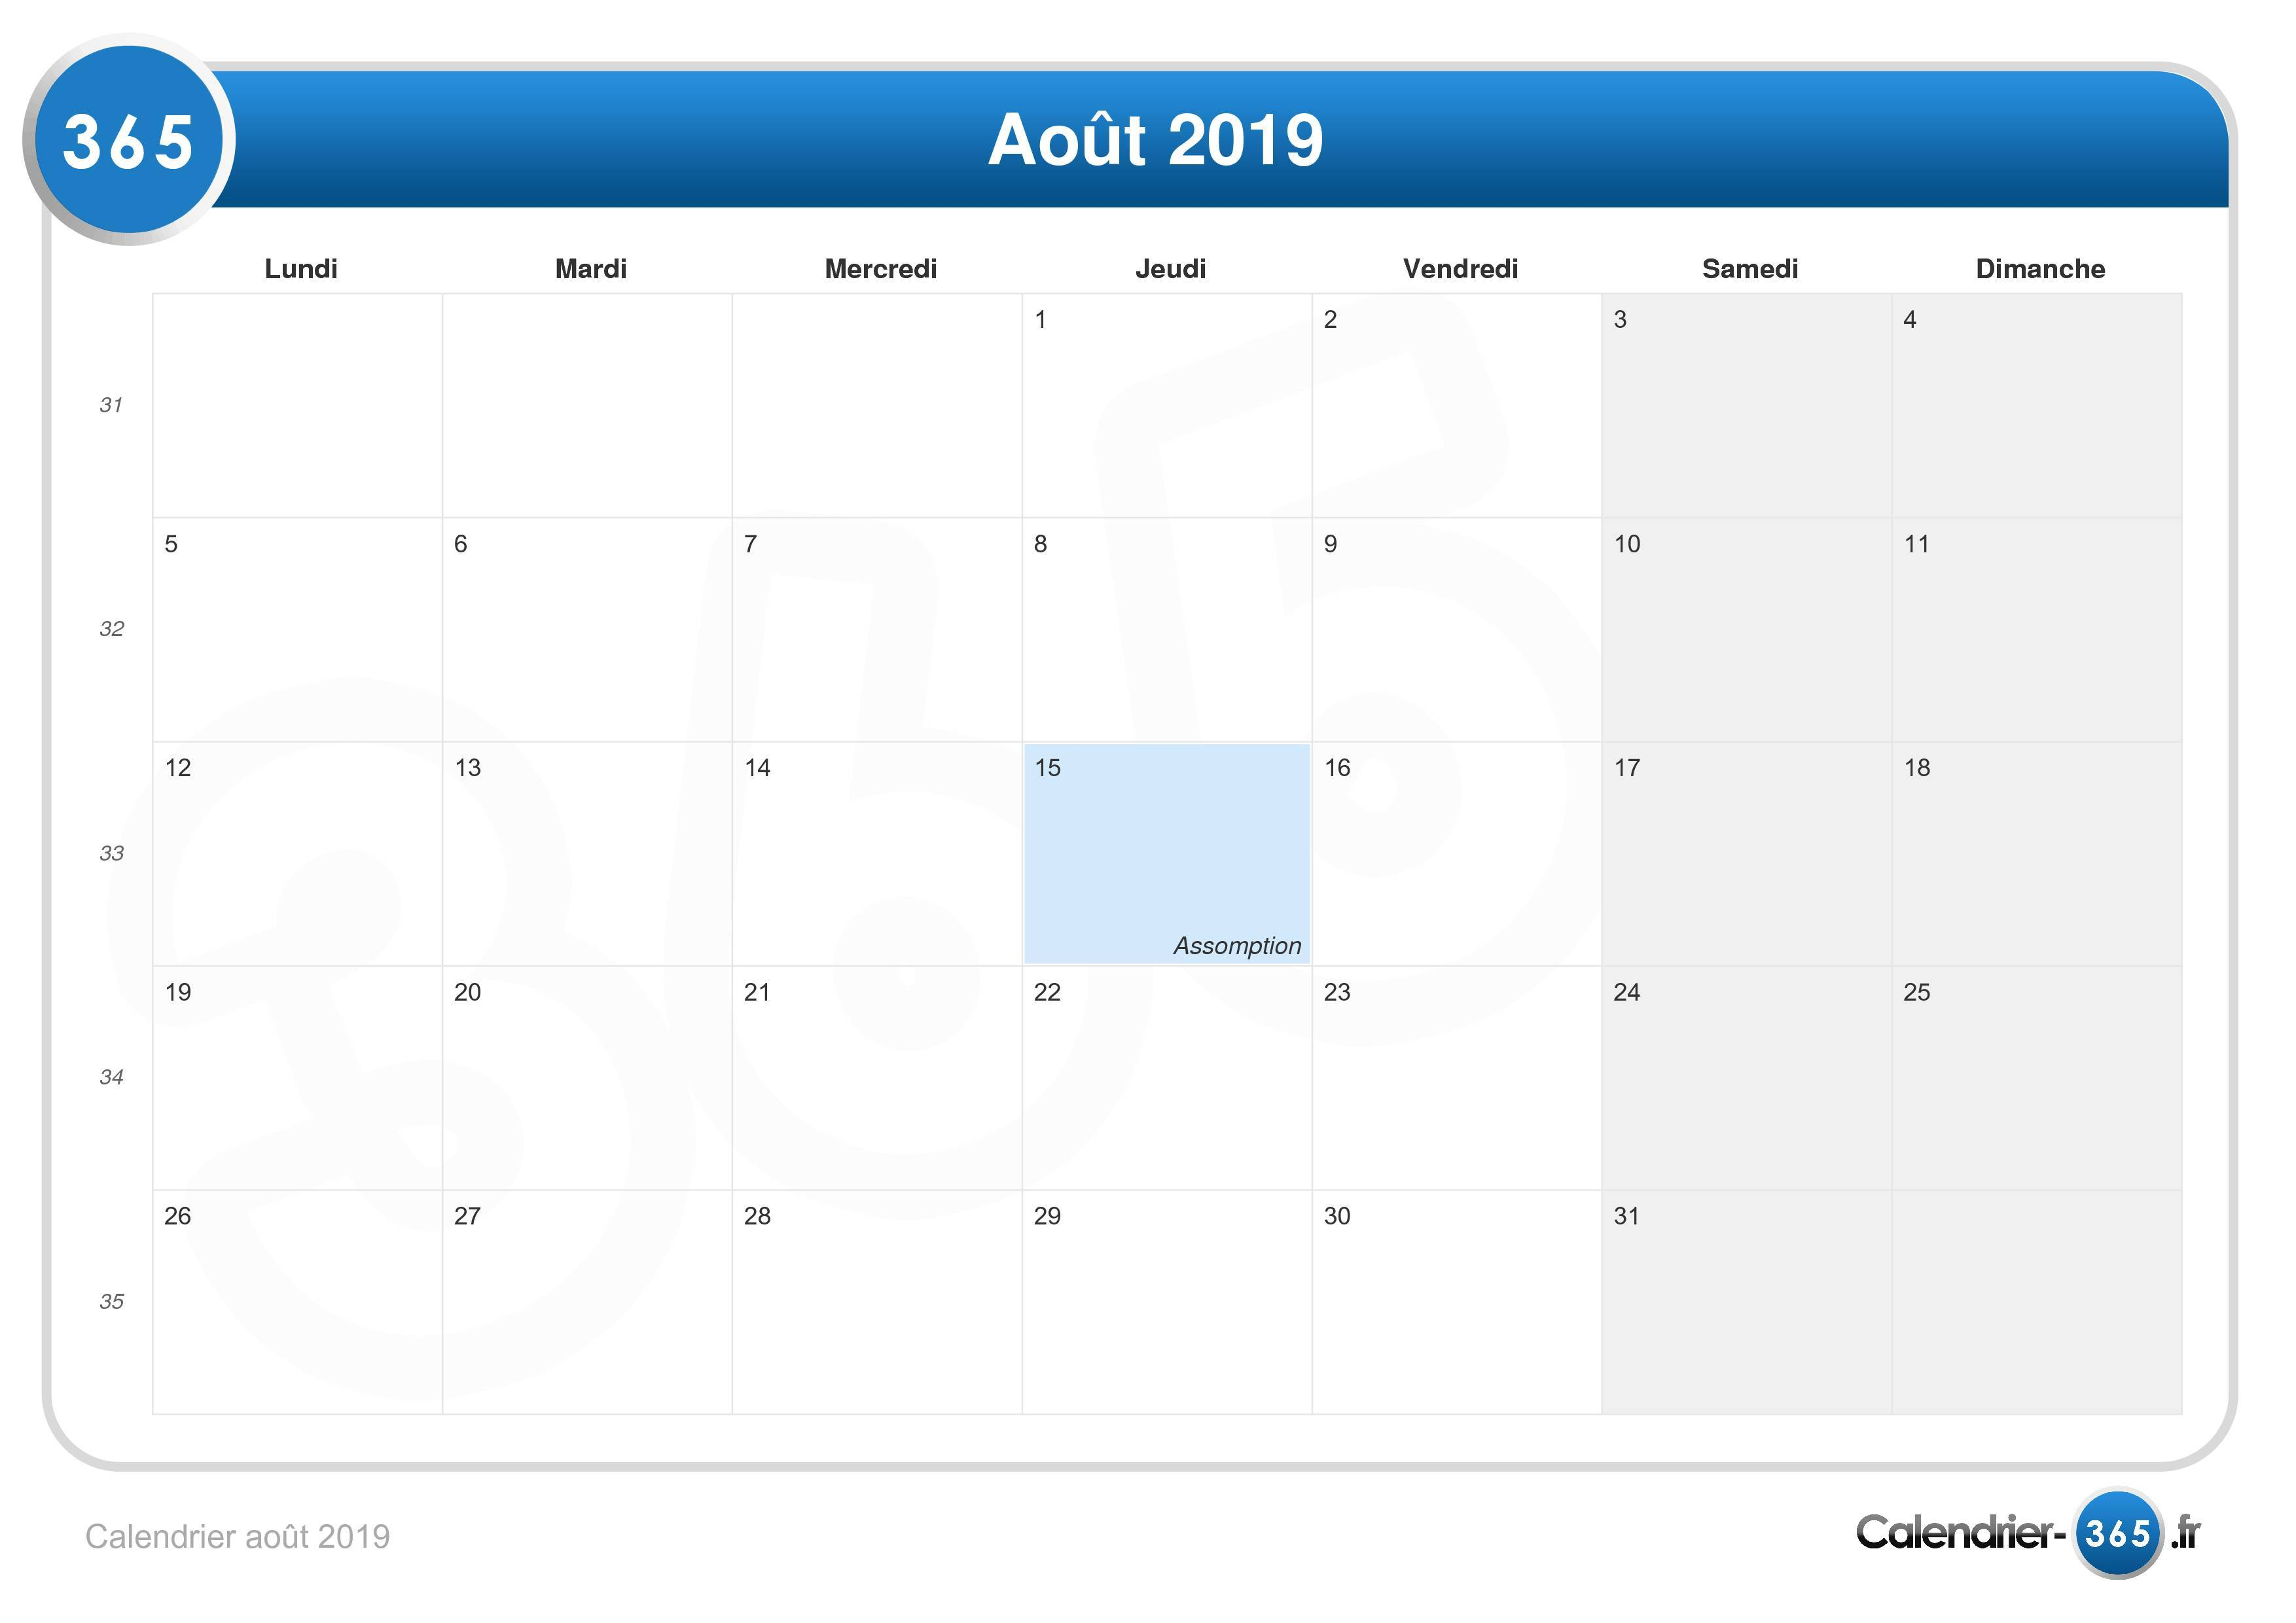 Semaine 34 Calendrier 2019.Calendrier Aout 2019